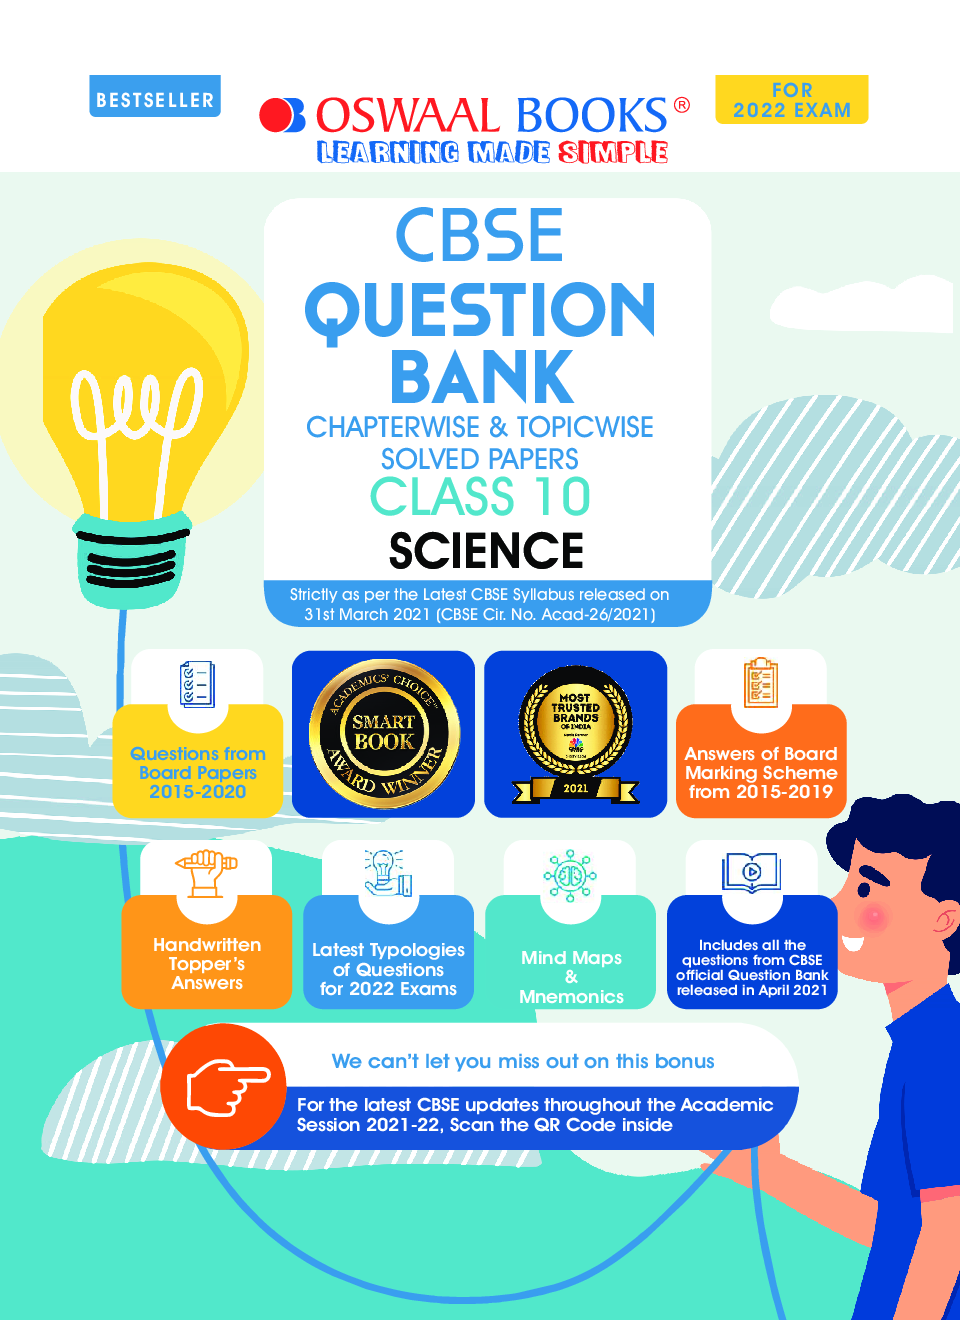 Oswaal CBSE Question Bank Class 10 Science Book Chapterwise & Topicwise Includes Objective Types & MCQ's (For 2022 Exam) - Page 2